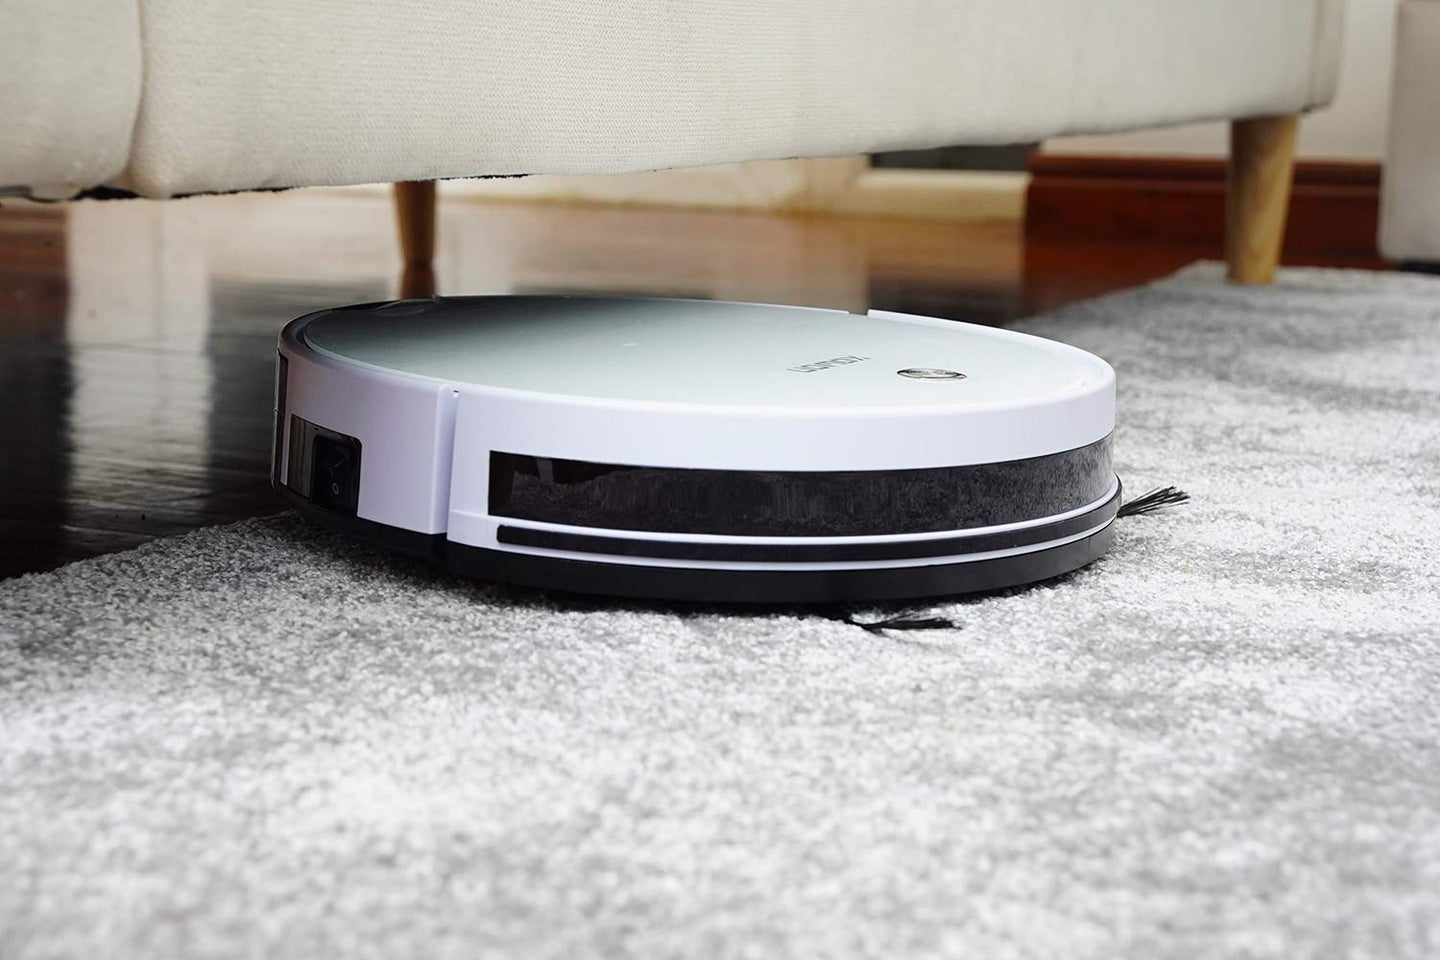 robot vacuum going under a couch